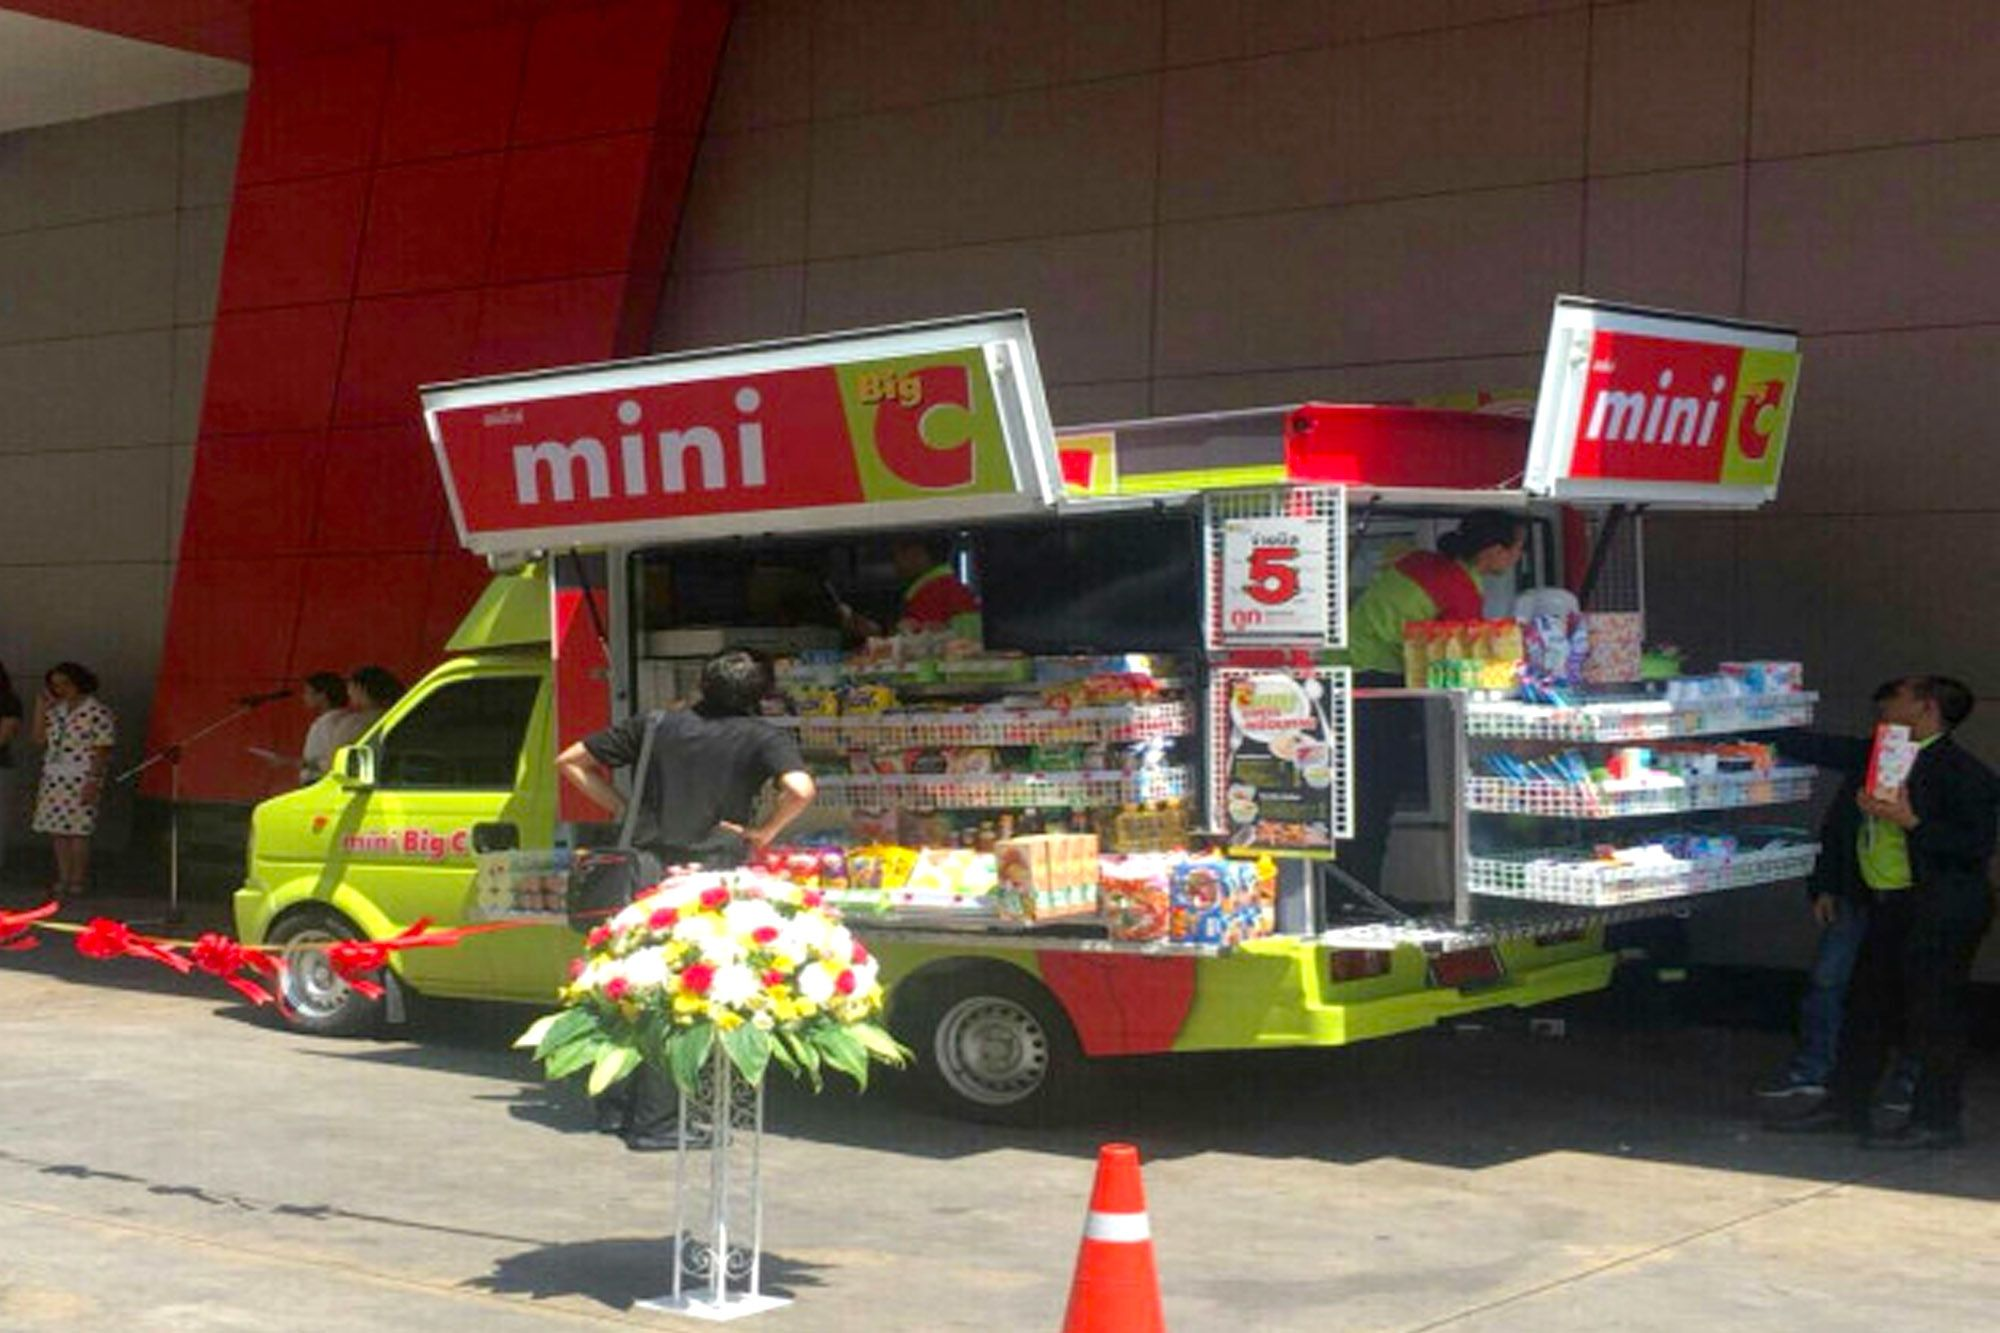 Mini Big C 移動式雜貨車 商務部 違反公平交易 Big C Supercenter